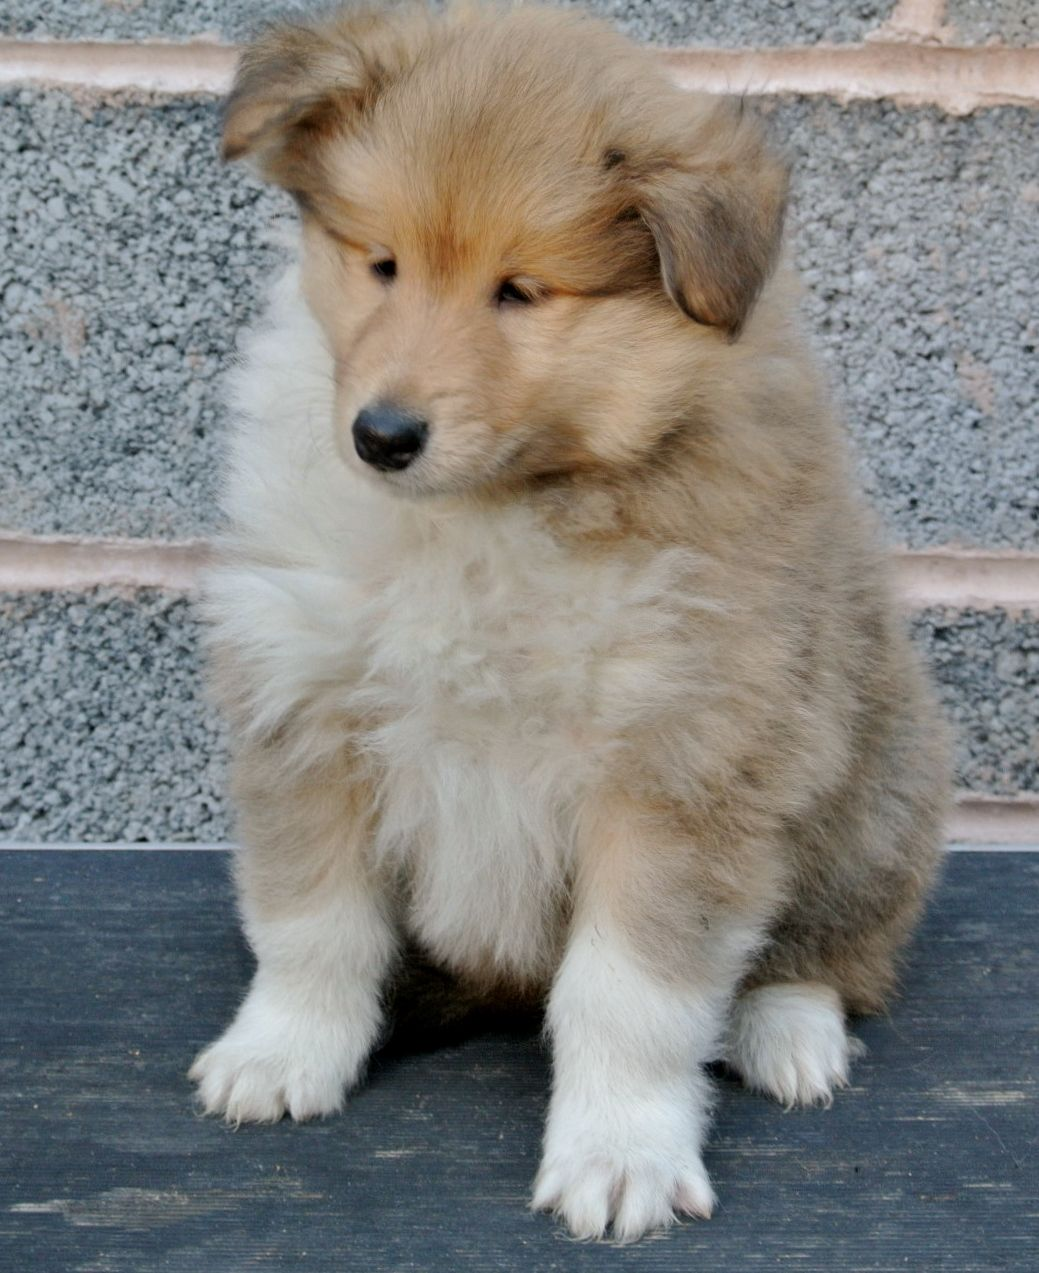 Collie, Rough Puppies: Collie, Rough Collie Puppies Birmingham Breed